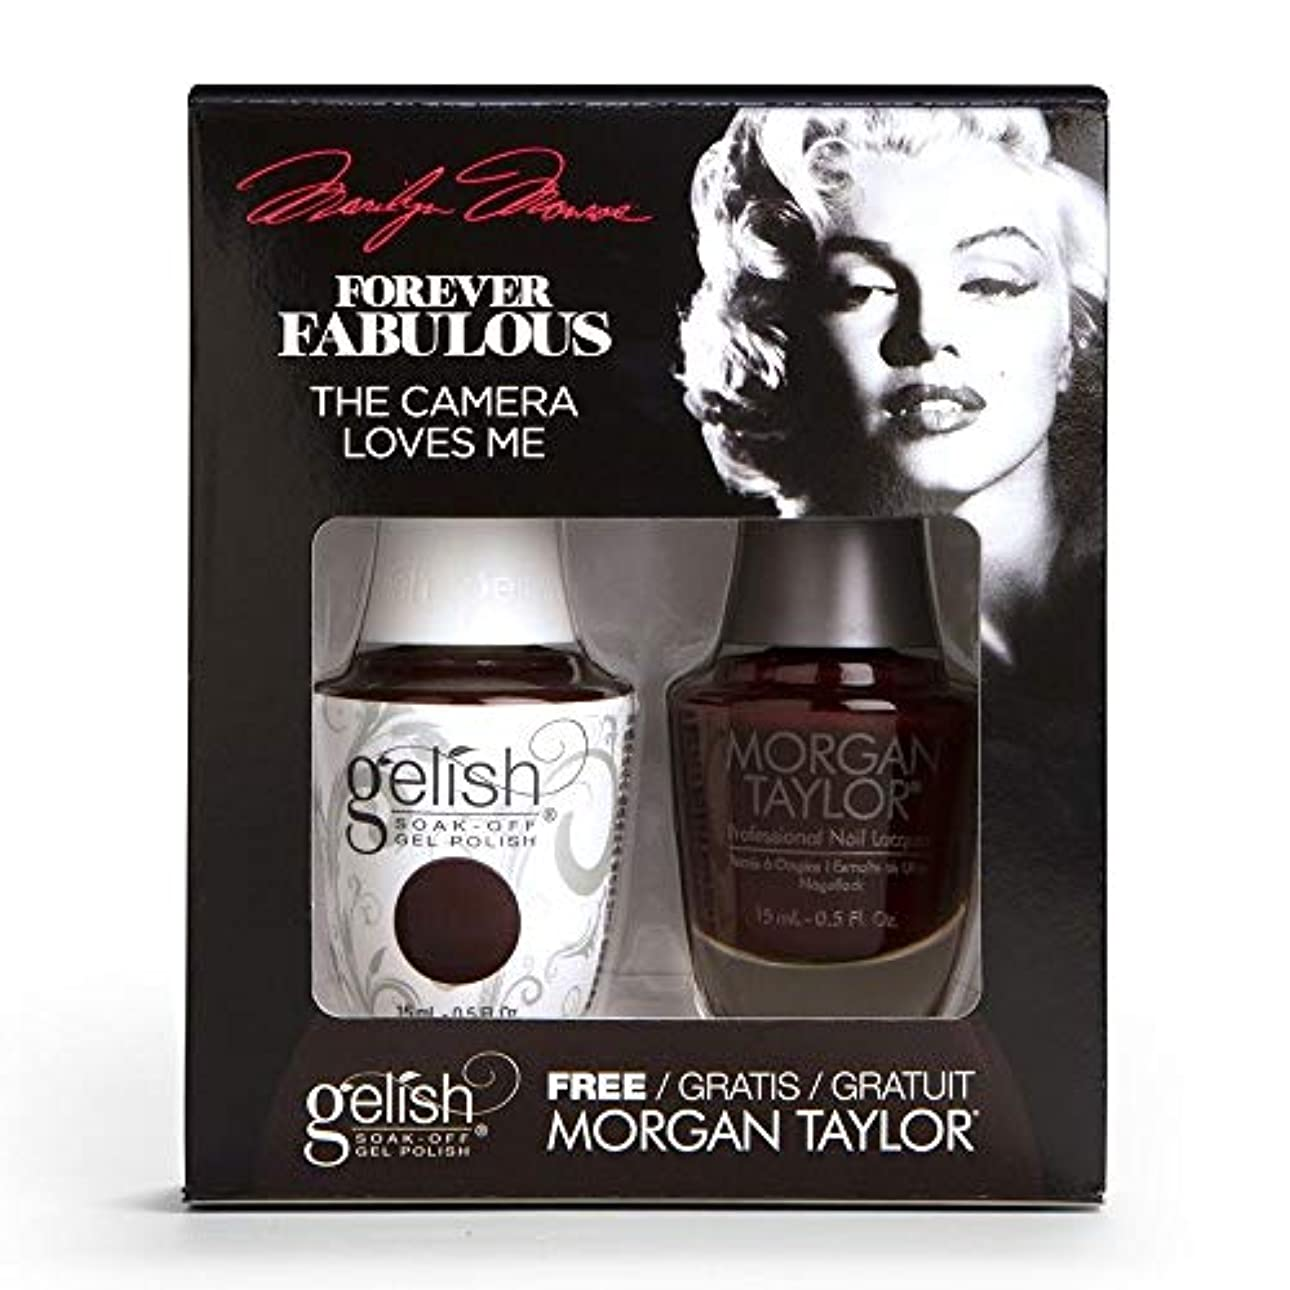 Harmony Gelish & Morgan Taylor - Two Of A Kind - Forever Fabulous Marilyn Monroe - The Camera Loves Me 15 mL /...